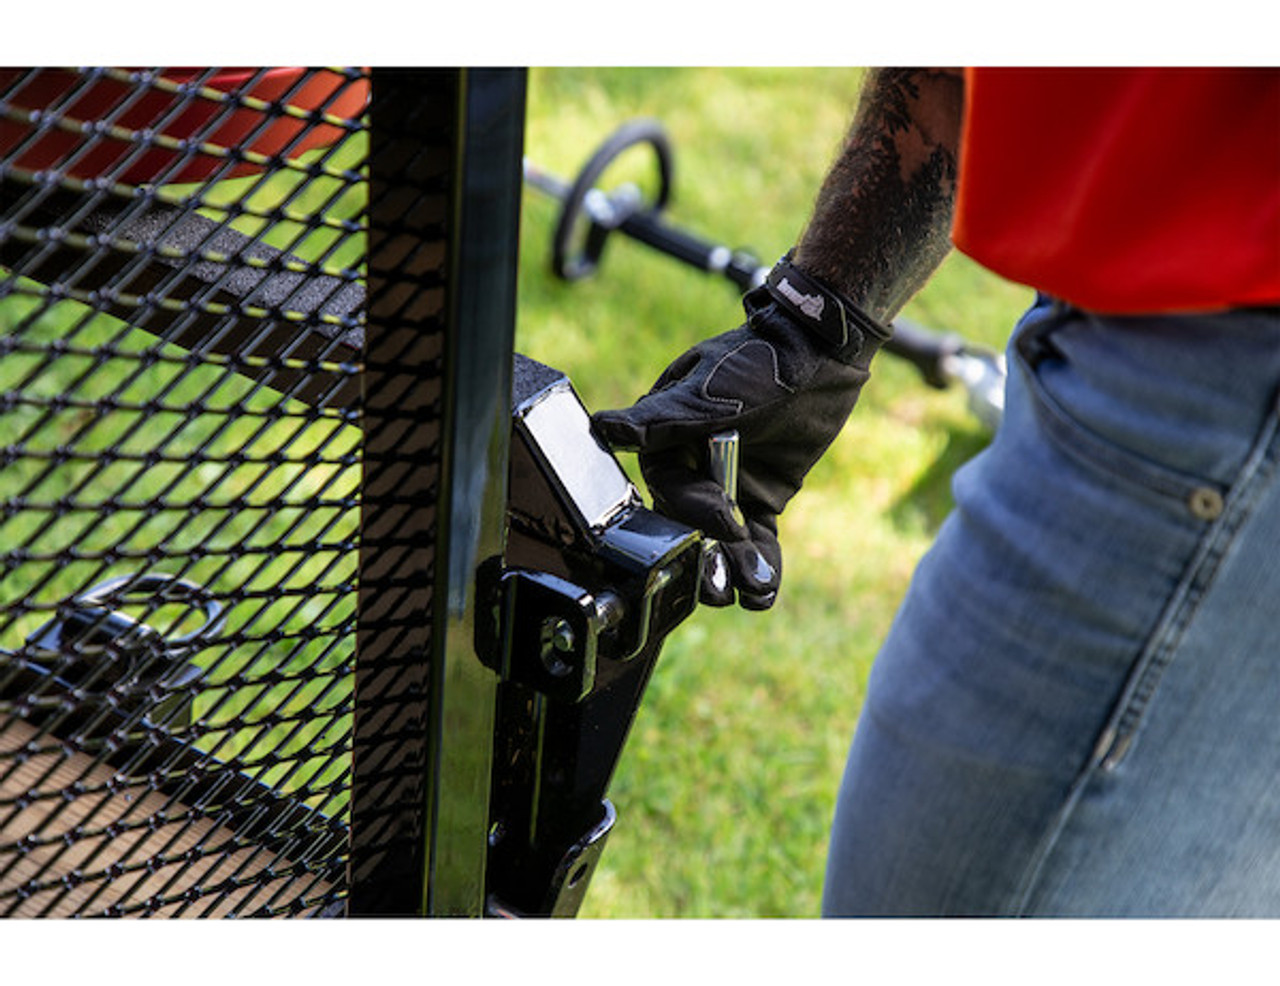 Buyers 5201000 EZ Gate™ Tailgate Assist for Landscaping Trailers and Open Style Trailers Picture # 6